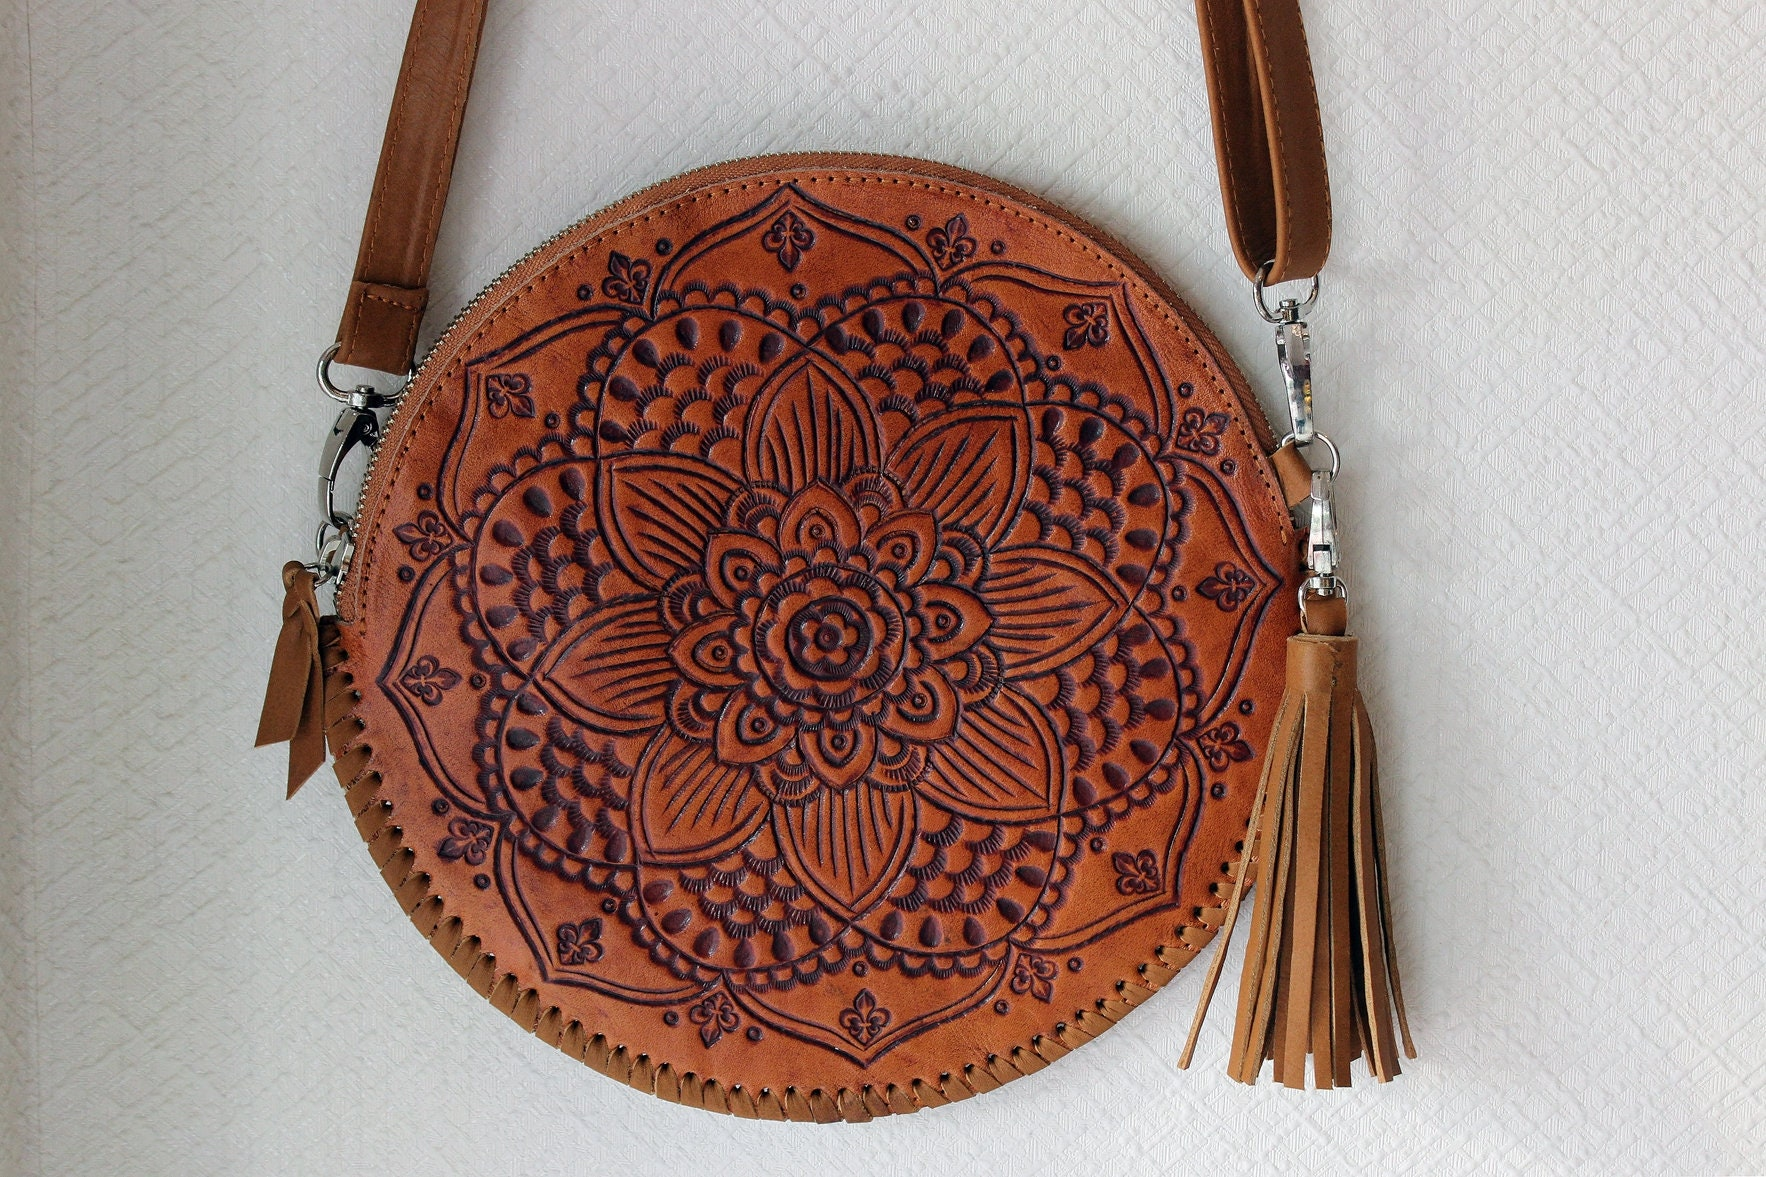 Hand Purse Shoulder Bag Crossbody Bag Handmade Brown Leather Round Purse Round clutch Anesis Circle Bag Real Leather Women Purse